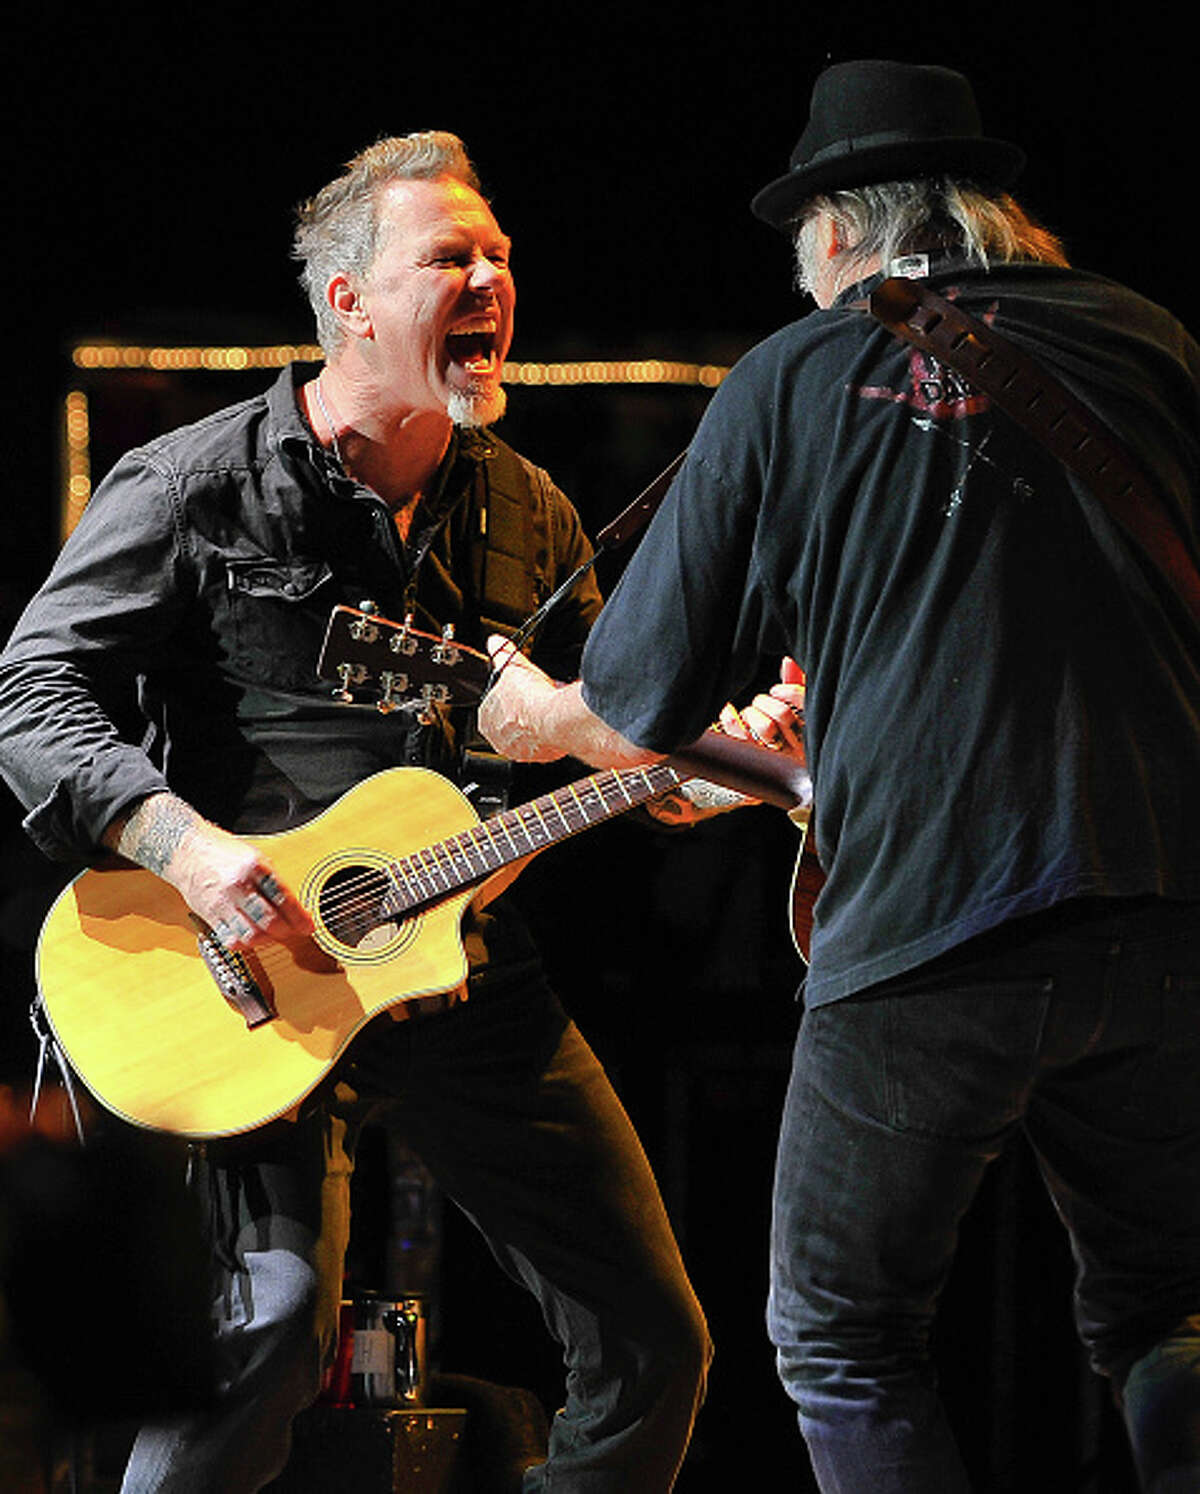 James Hetfield of Metallica and Neil Young perform at the 30th Annual Bridge School Benefit concert on Day 1 at Shoreline Amphitheatre on October 22, 2016 in Mountain View, California.